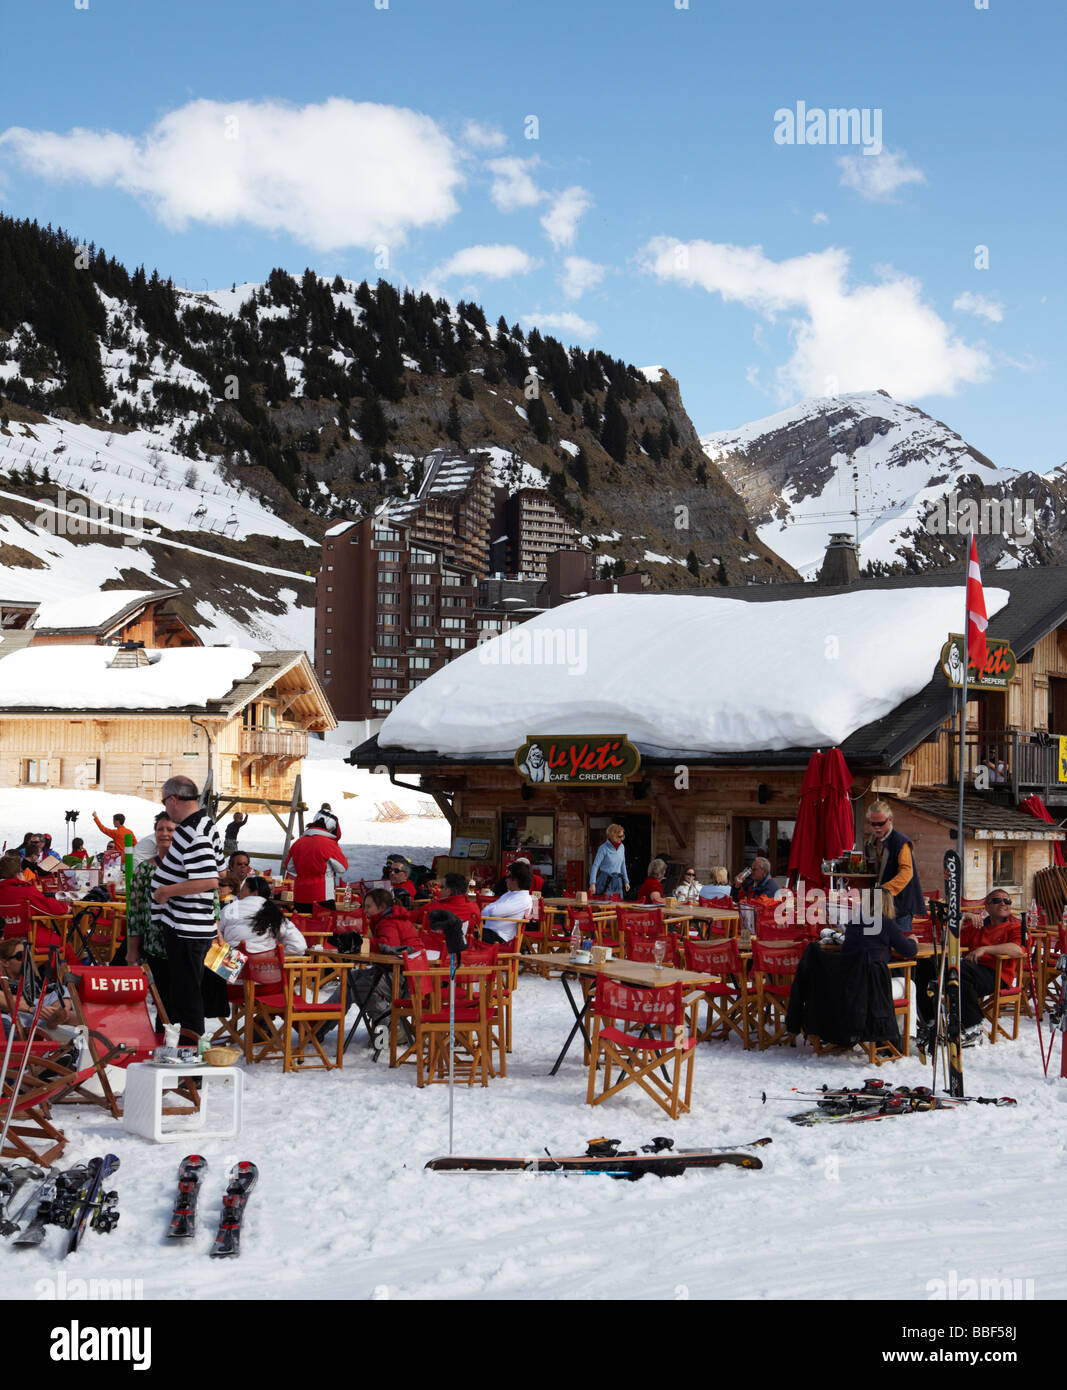 Morzine Ski Resort Ineedsnow Holiday Information For